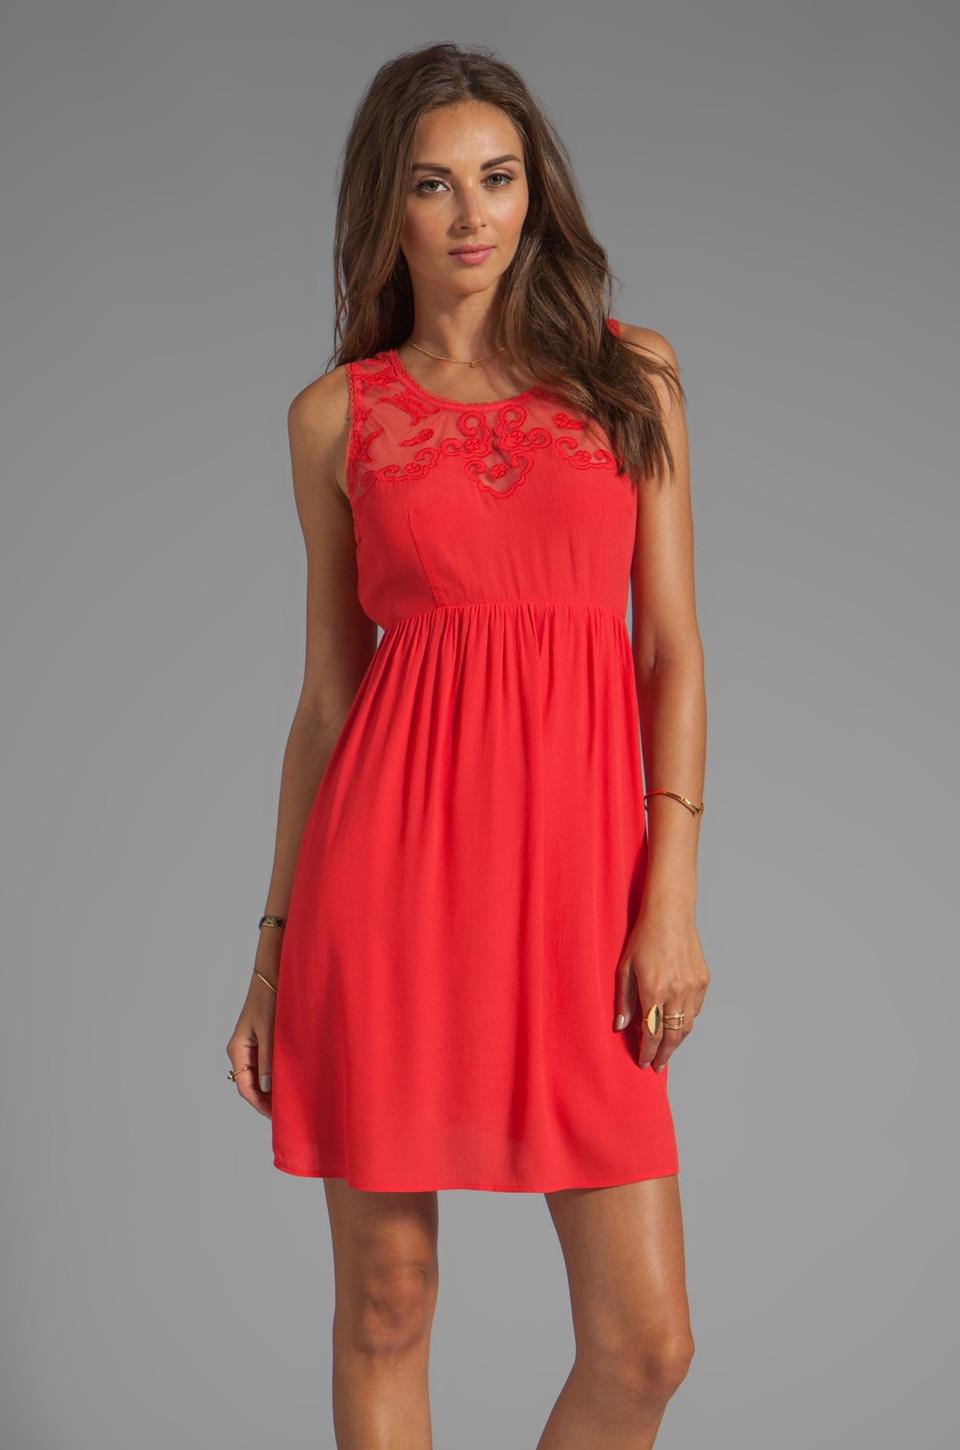 Ladakh Chantilly Dress in Blood Orange